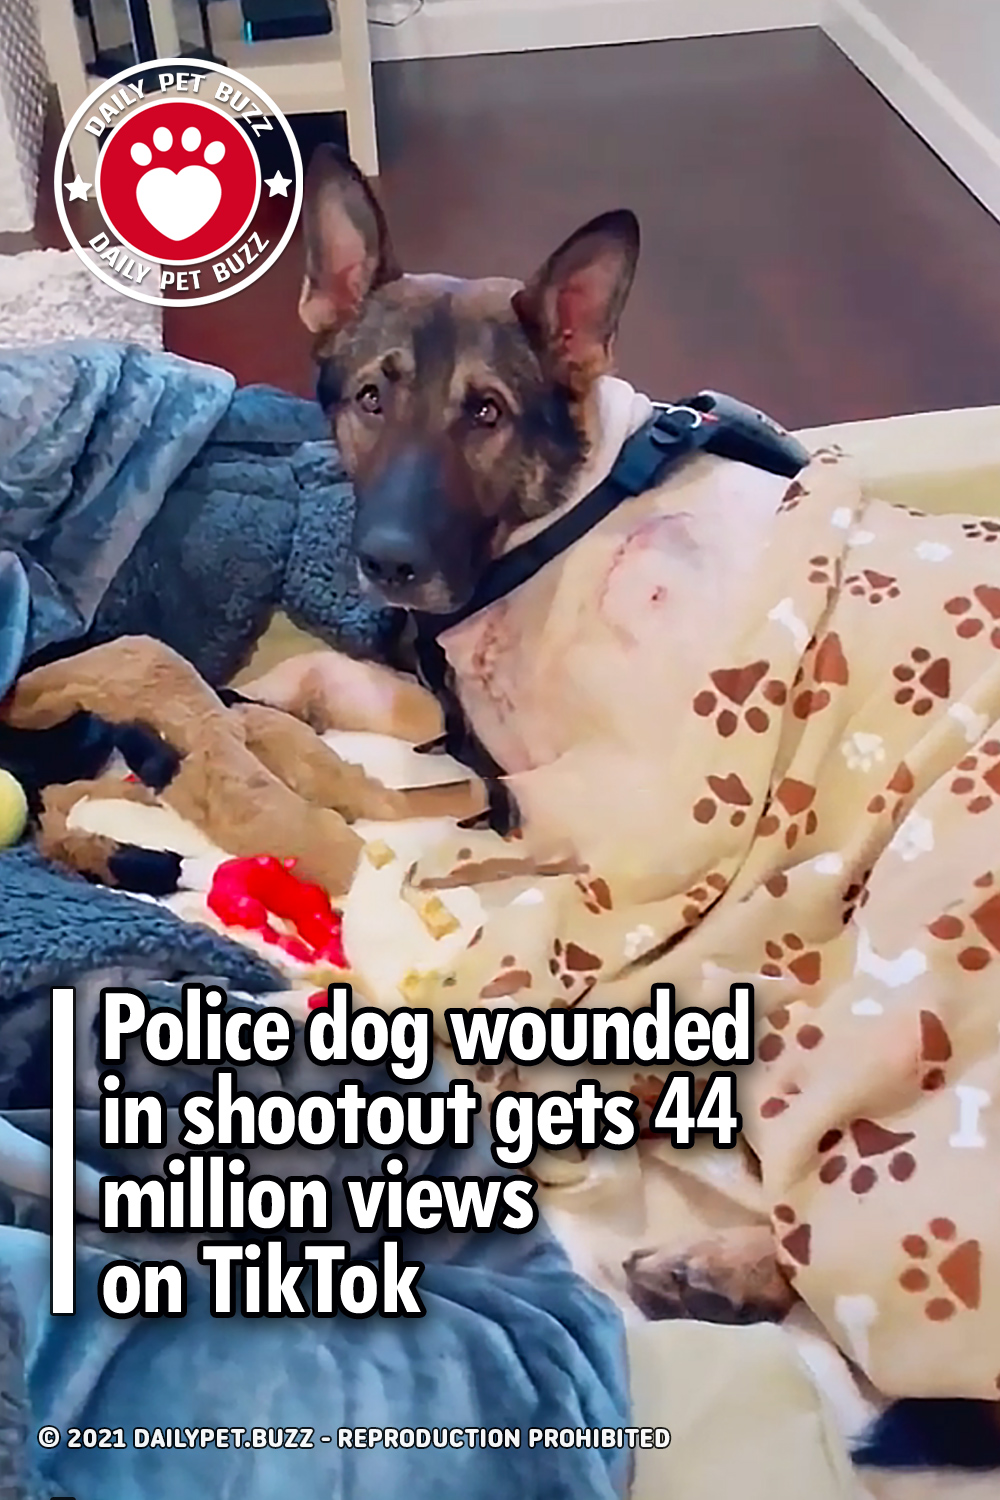 Police dog wounded in shootout gets 44 million views on TikTok